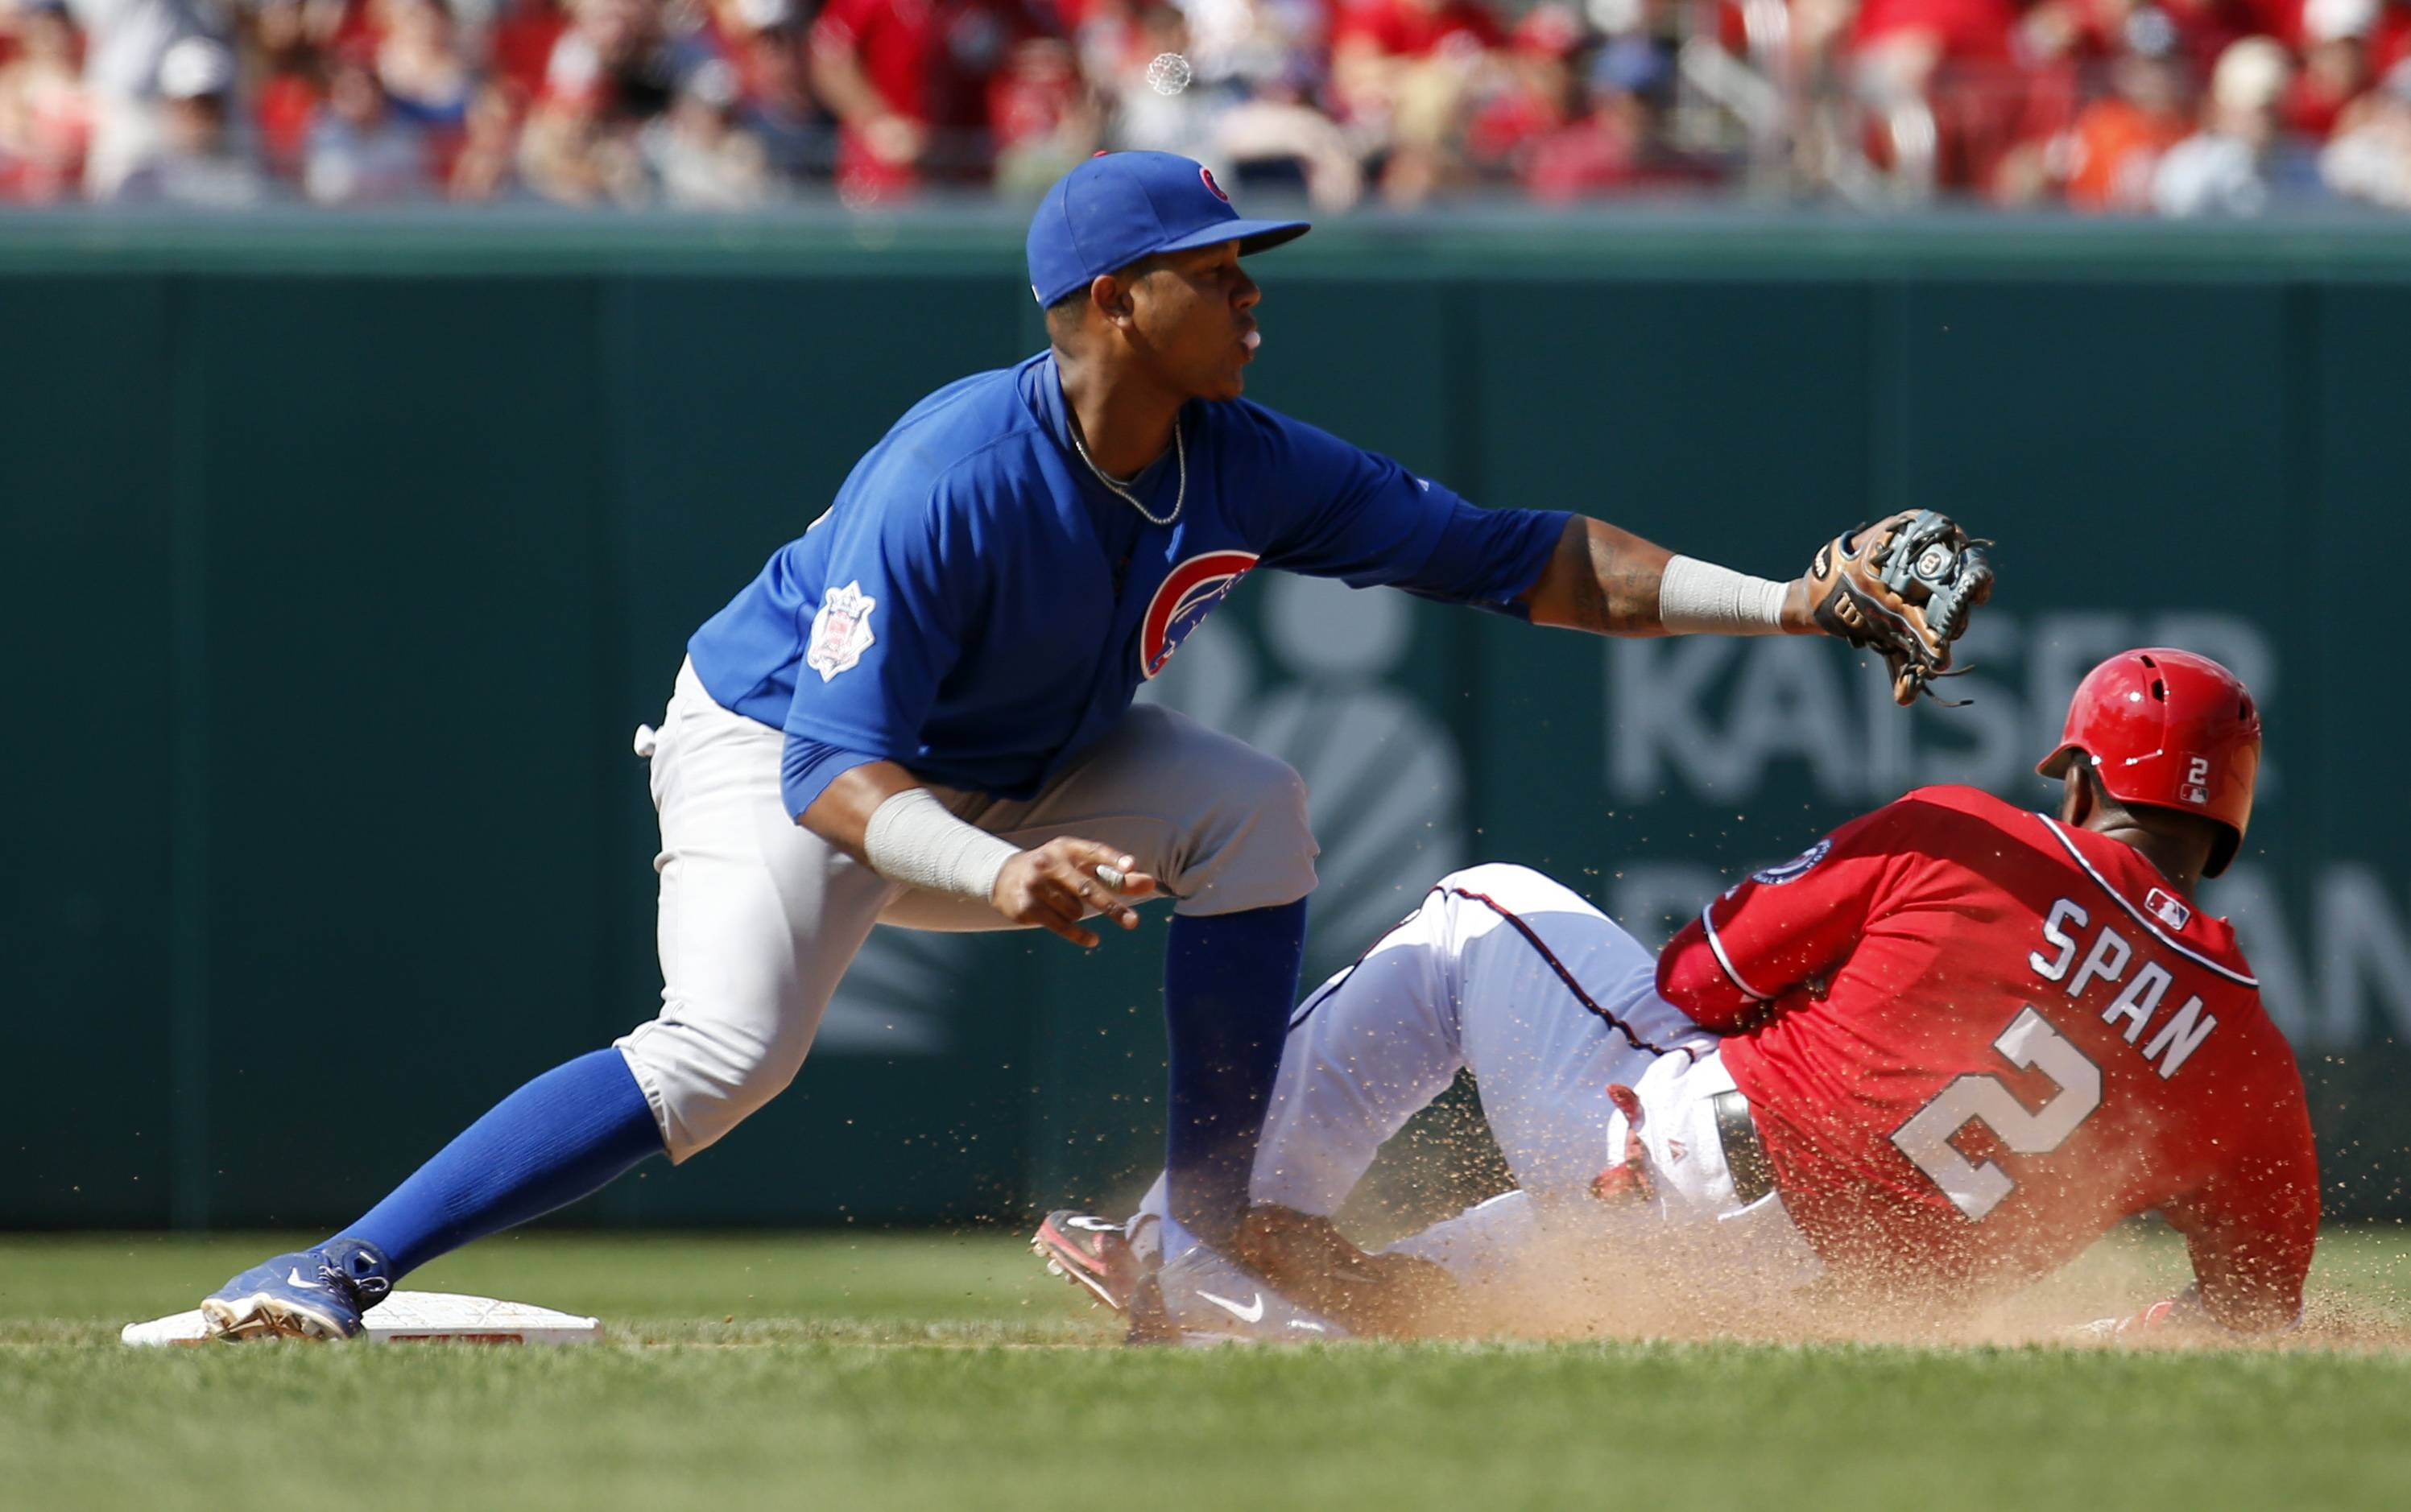 Cubs shortstop Starlin Castro is headed to the All-Star game for the third time in four seasons.